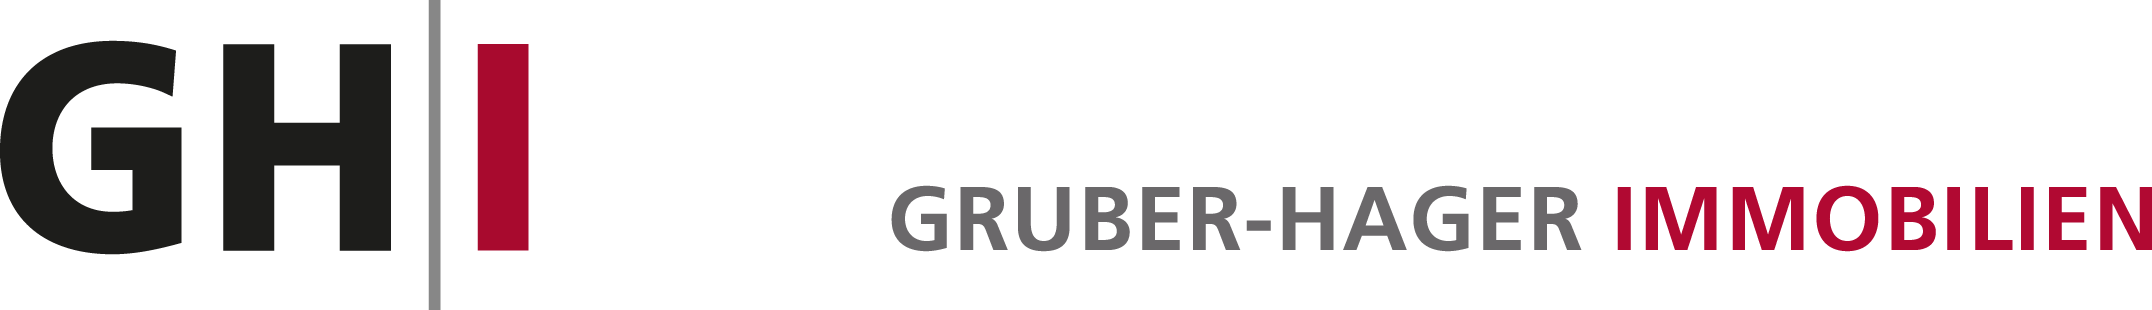 GRUBER-HAGER IMMOBILIEN